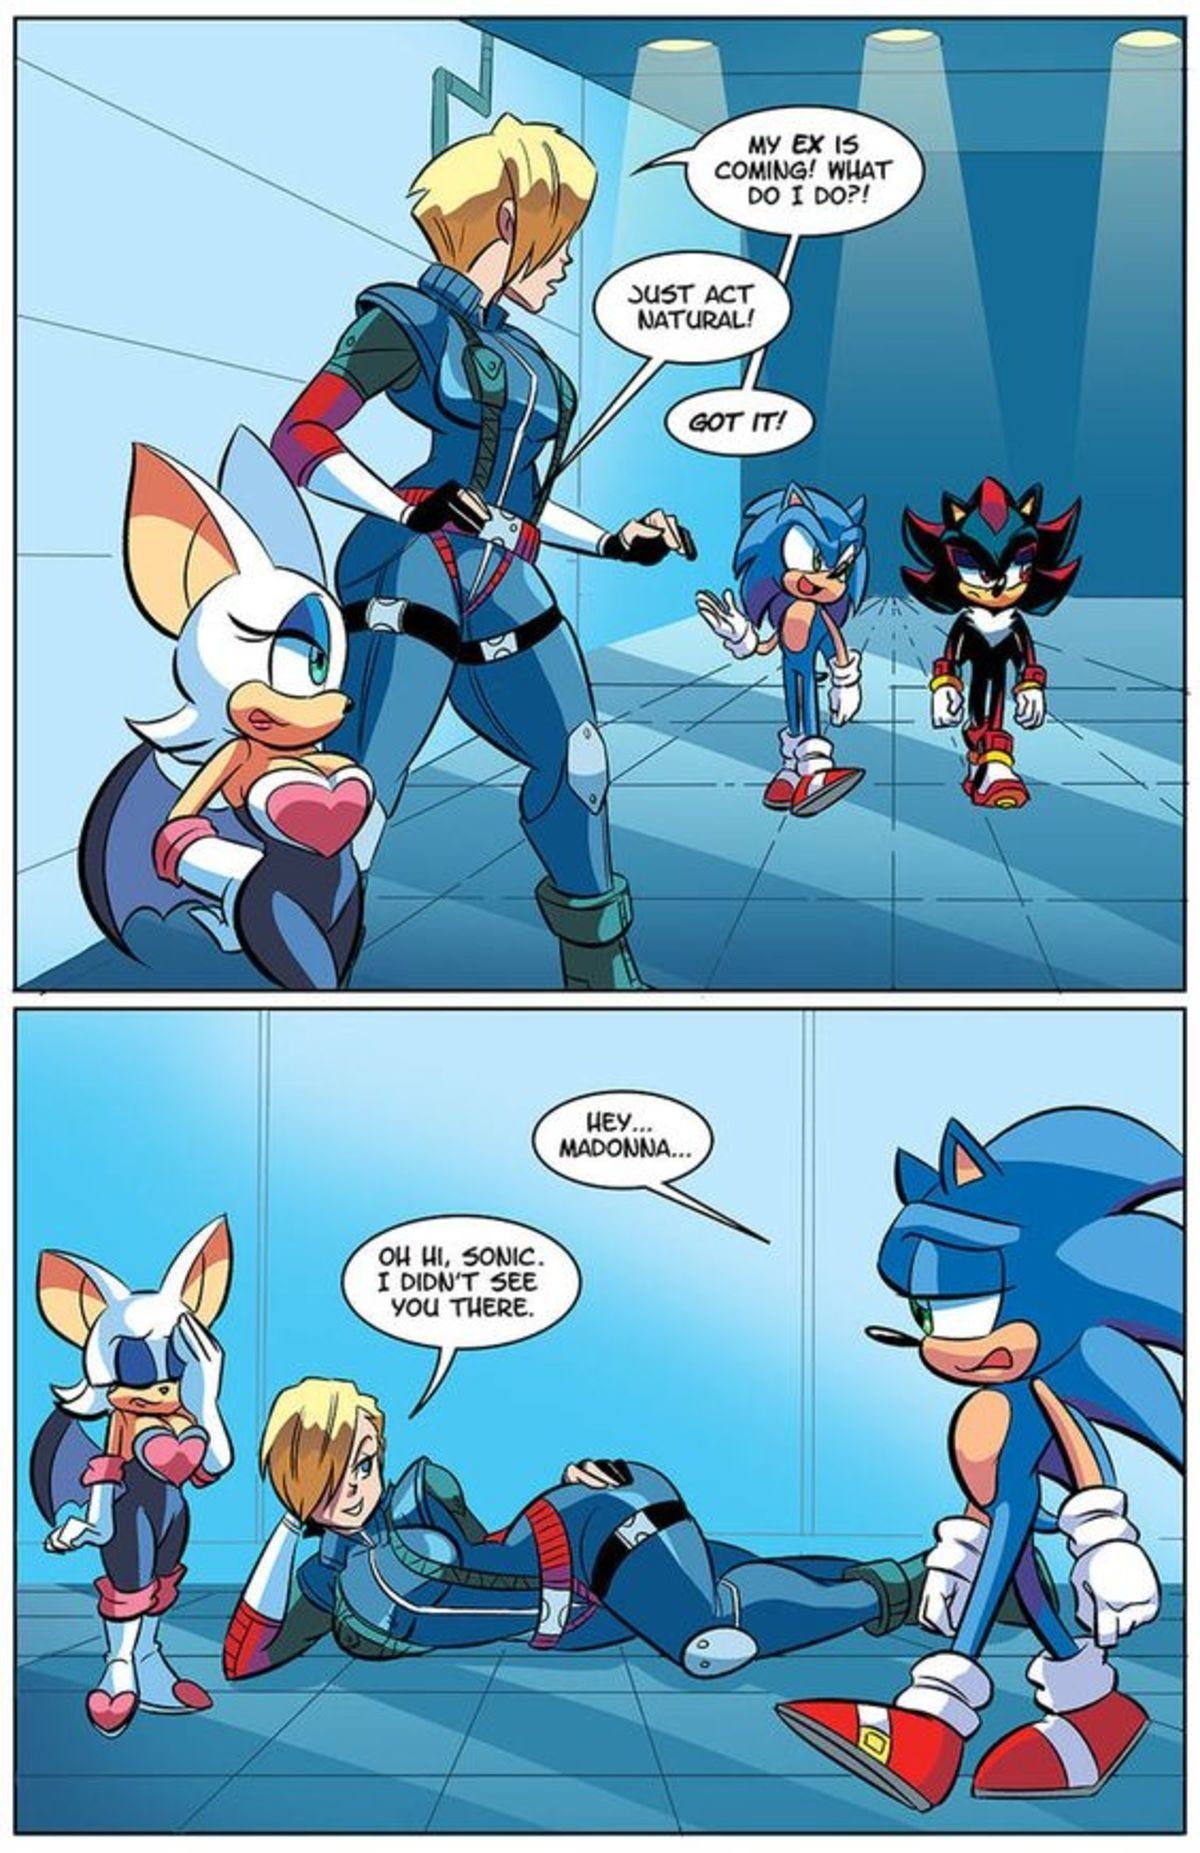 Exes. .. god I am so glad that sega got rid of madonna when they made the original games it'd be so weeeeird to have a furry little guy dating a human. So glad that neve